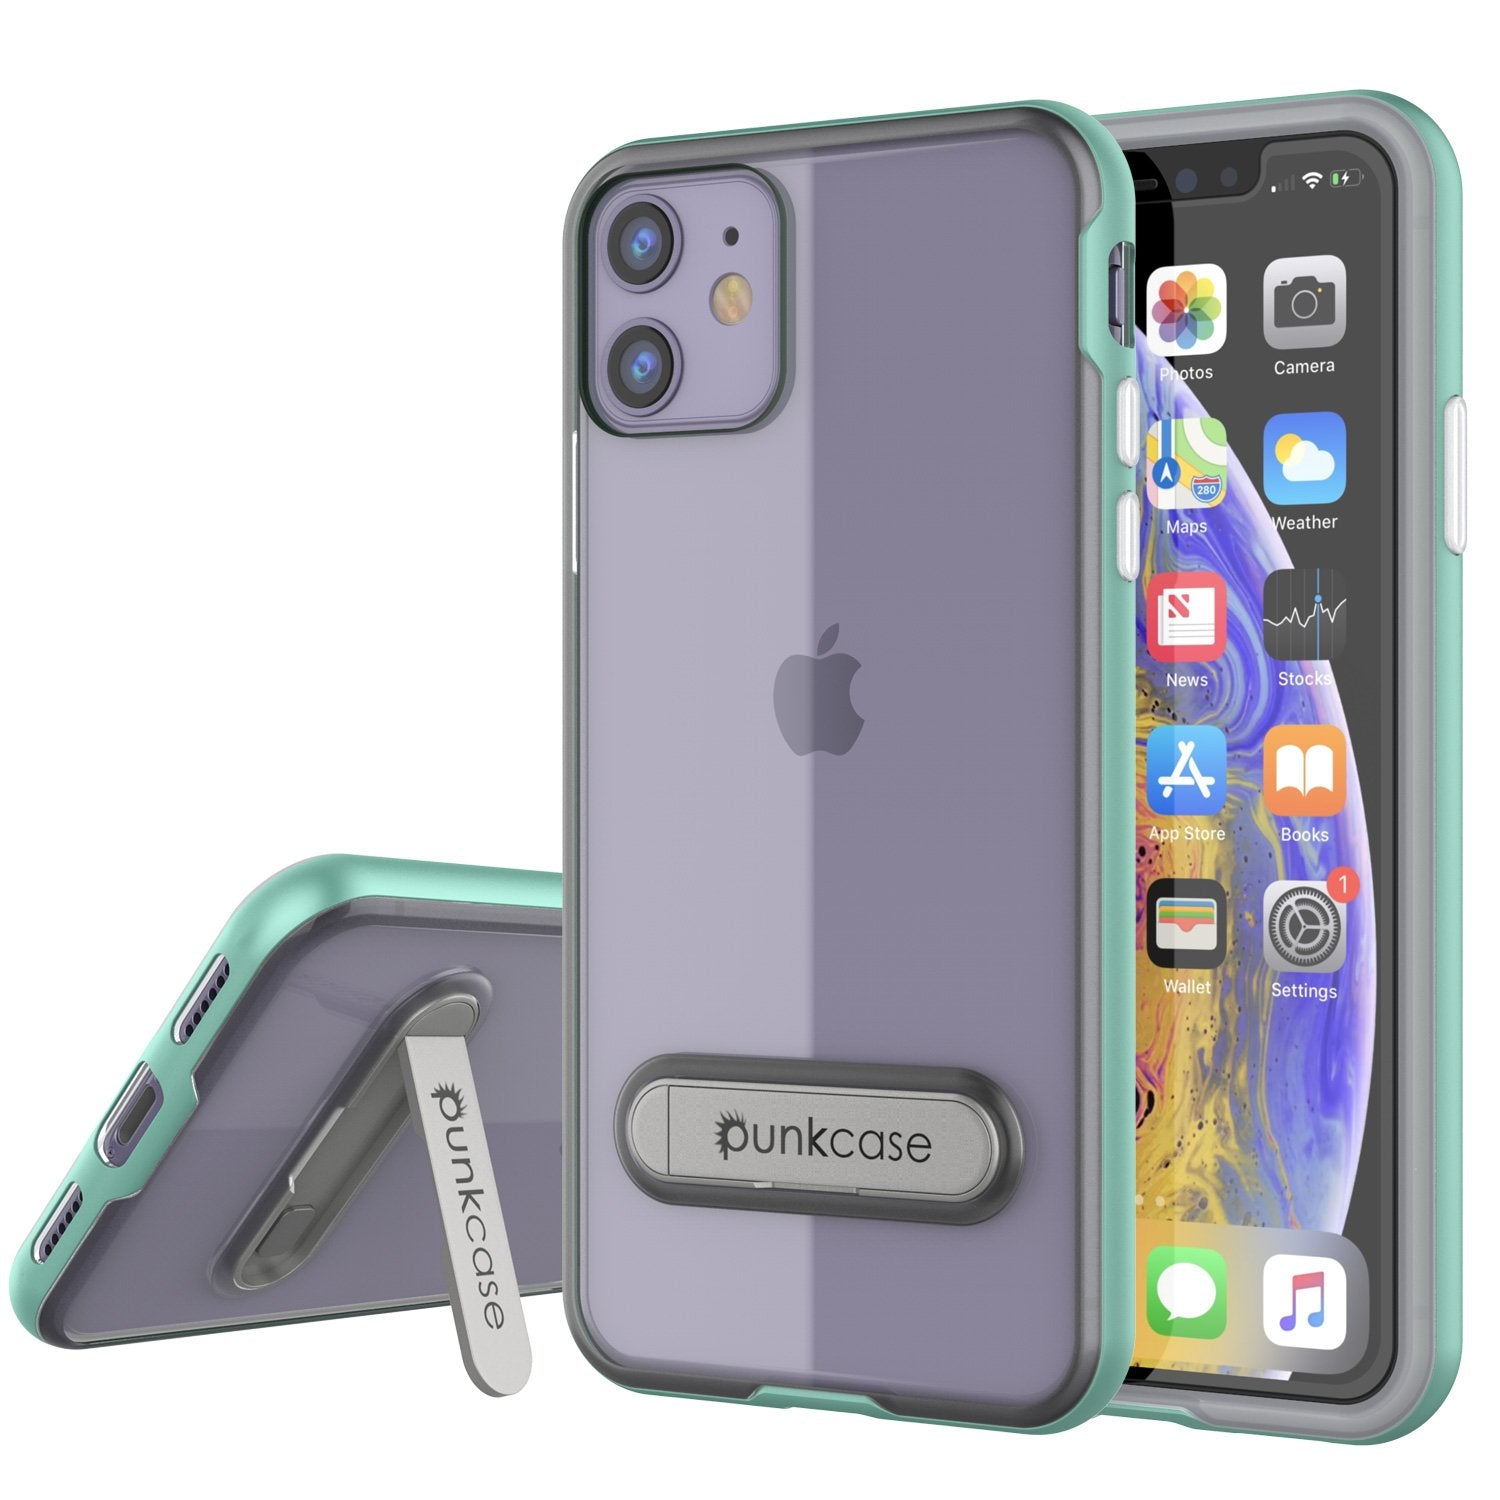 iPhone 12 Case, PUNKcase [LUCID 3.0 Series] [Slim Fit] Protective Cover w/ Integrated Screen Protector [Teal]